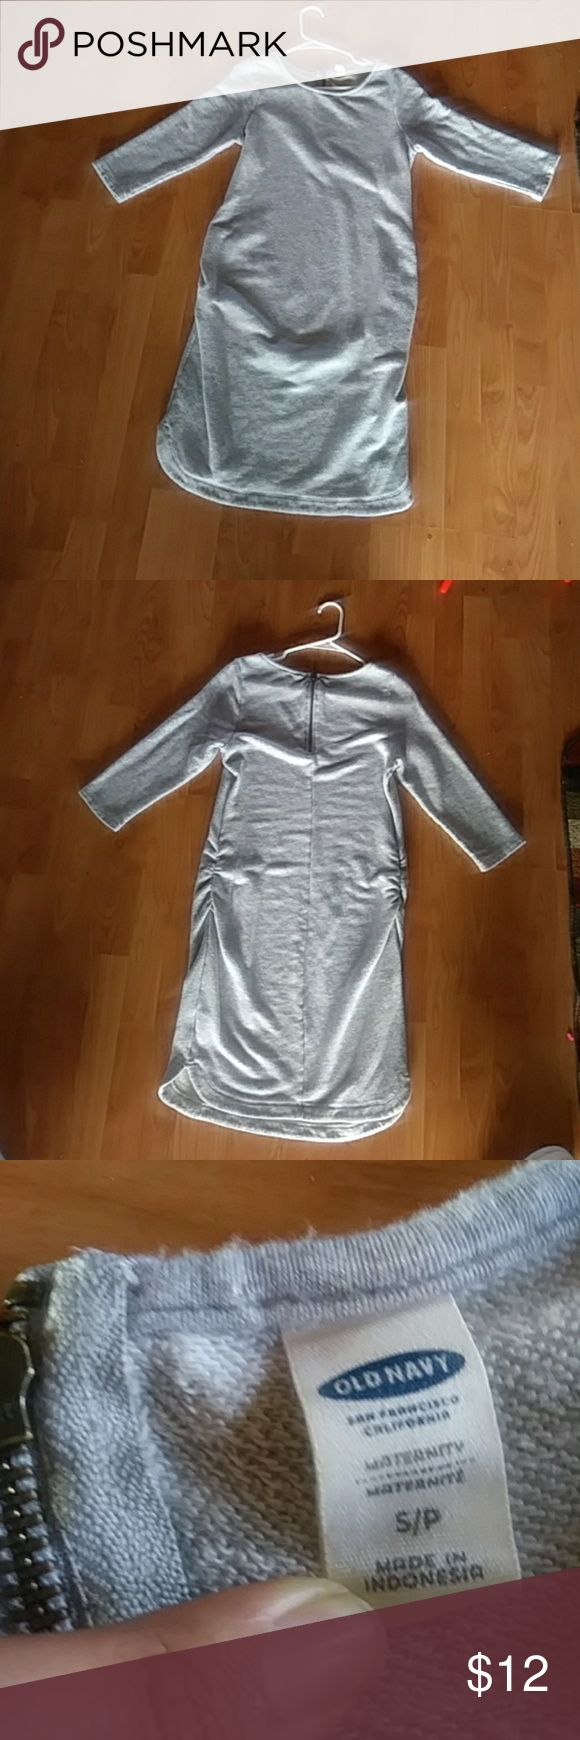 """Old Navy Maternity dress Worn through 2 pregnancies; super soft and comfy maternity dress that's made from sweatshirt material. The brand is Old Navy. The dress falls at the knee for women under 5'5"""" falls above the knee if above 5'5"""".  The dress does have some peeling which is shown in a photo above.  Size is Small but can accommodate a size Medium Old Navy Dresses Mini"""